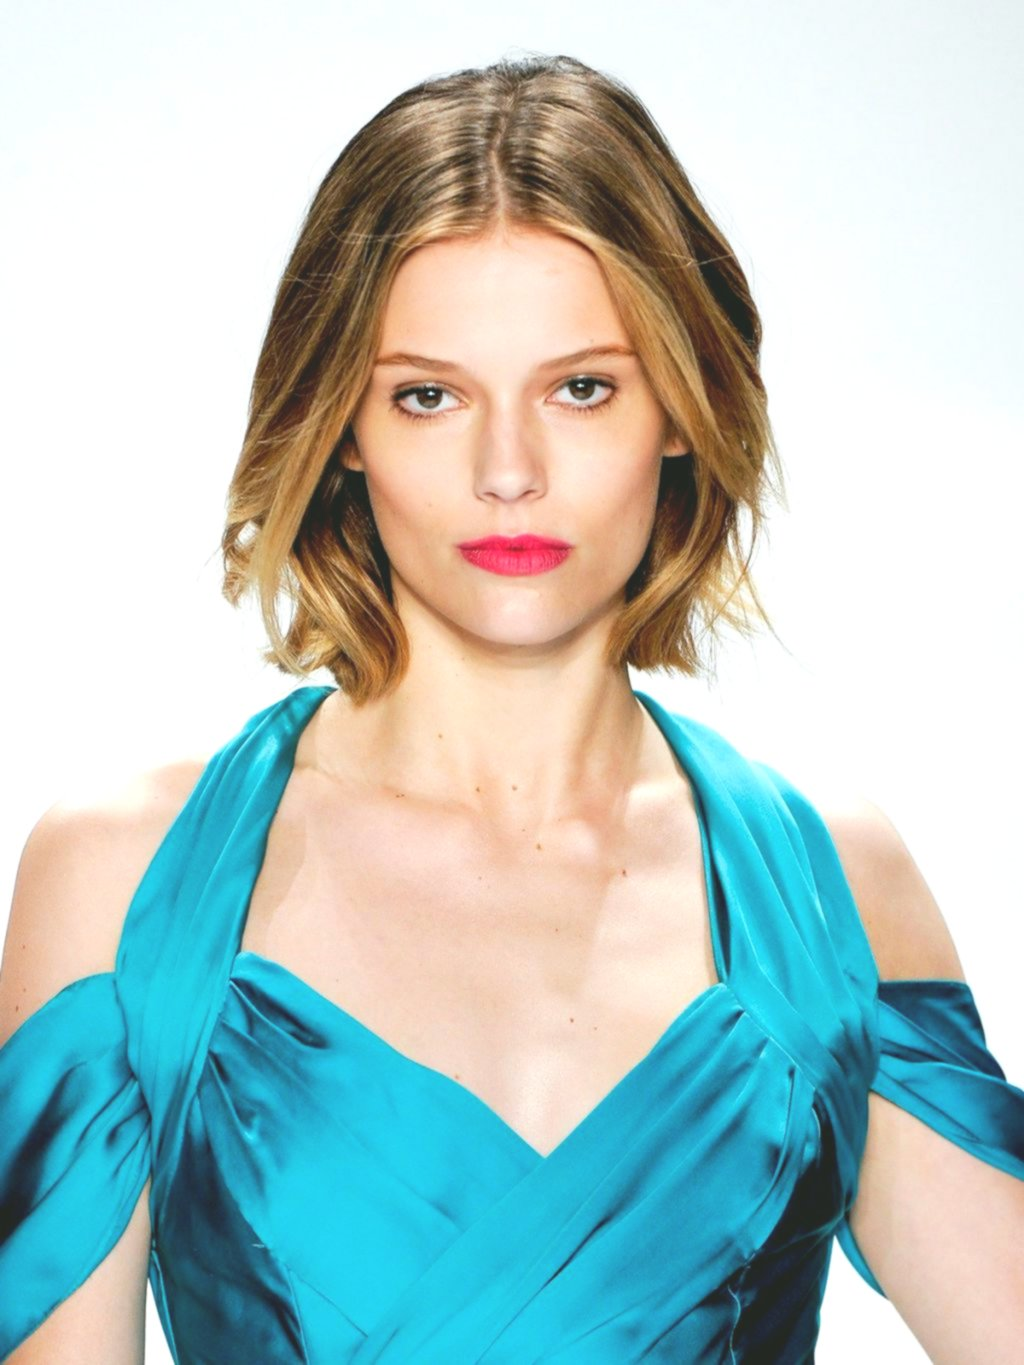 Newest hairstyles for fine thin hair décor-New Hairstyles For Fine Thin Hair Design